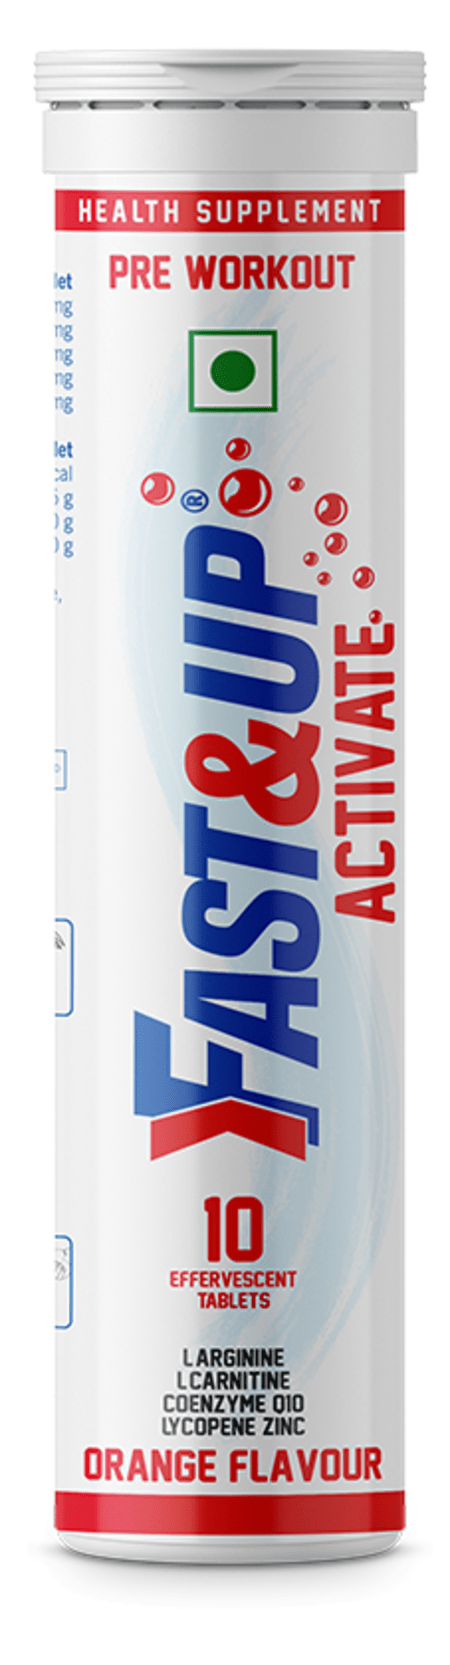 Fast&up Activate - Tube Of 10 Tabs - Orange Flavor